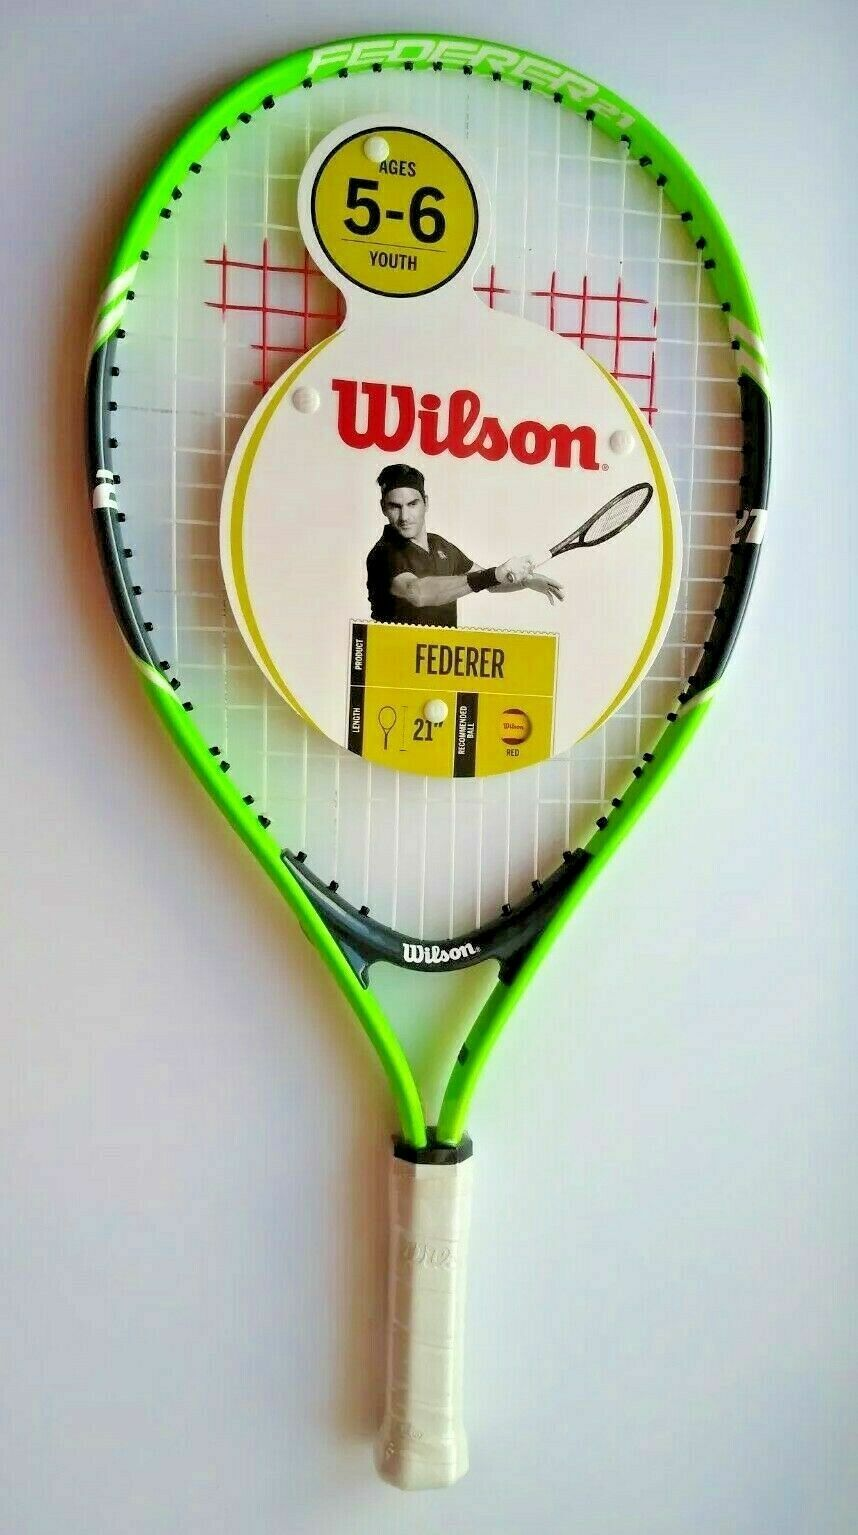 Wilson Federer Jr 21″ Tennis Racket Lime Green Ages 5-6y Racquets